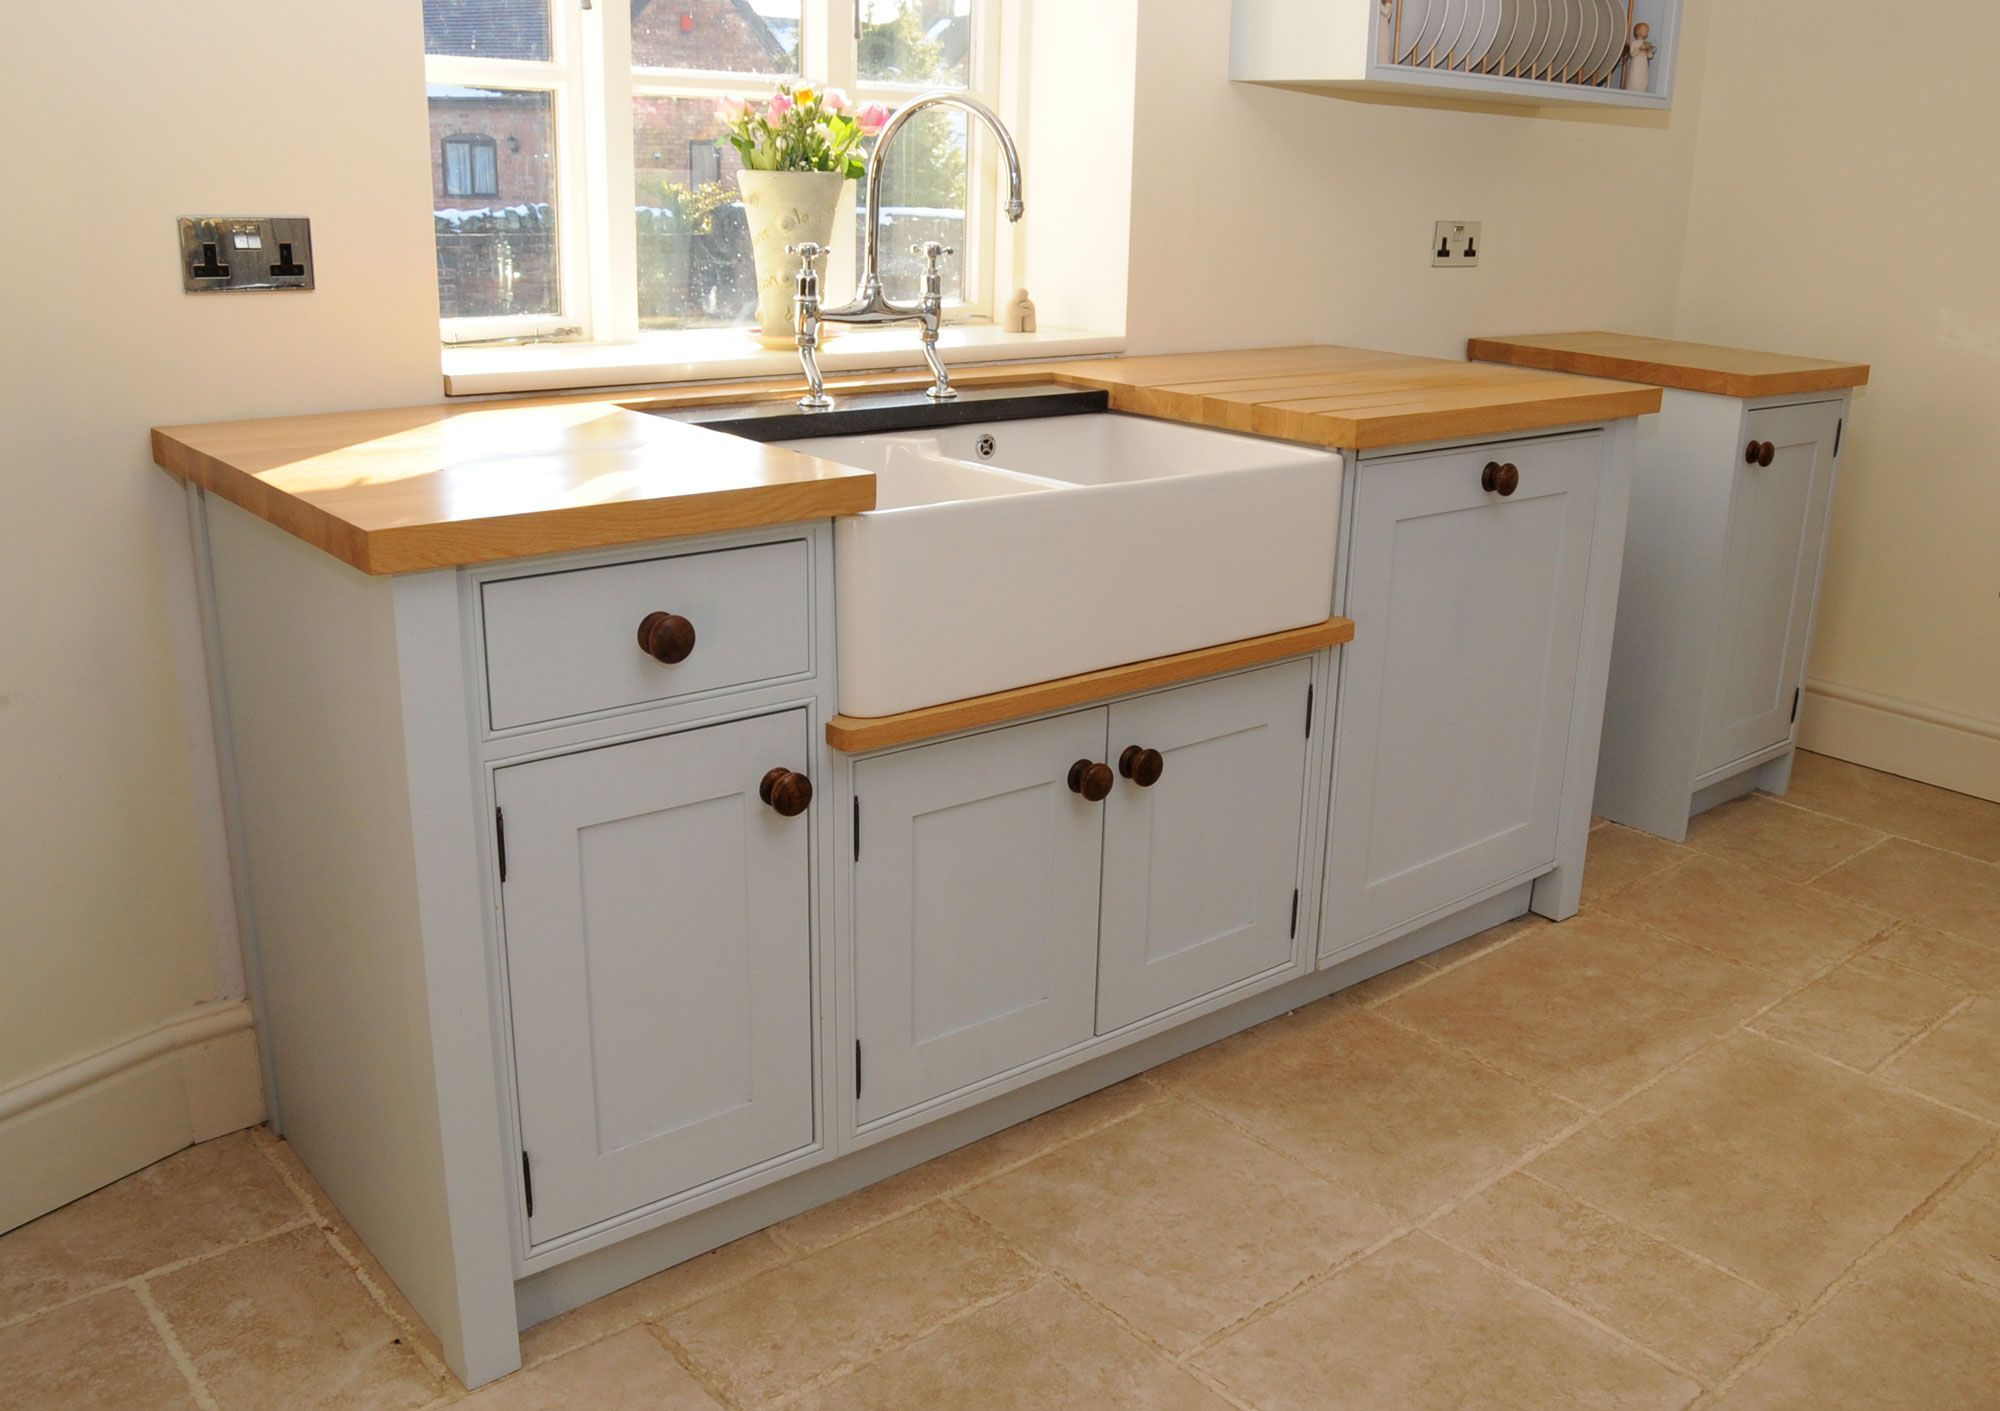 Freestanding kitchens - Wells Reclamation